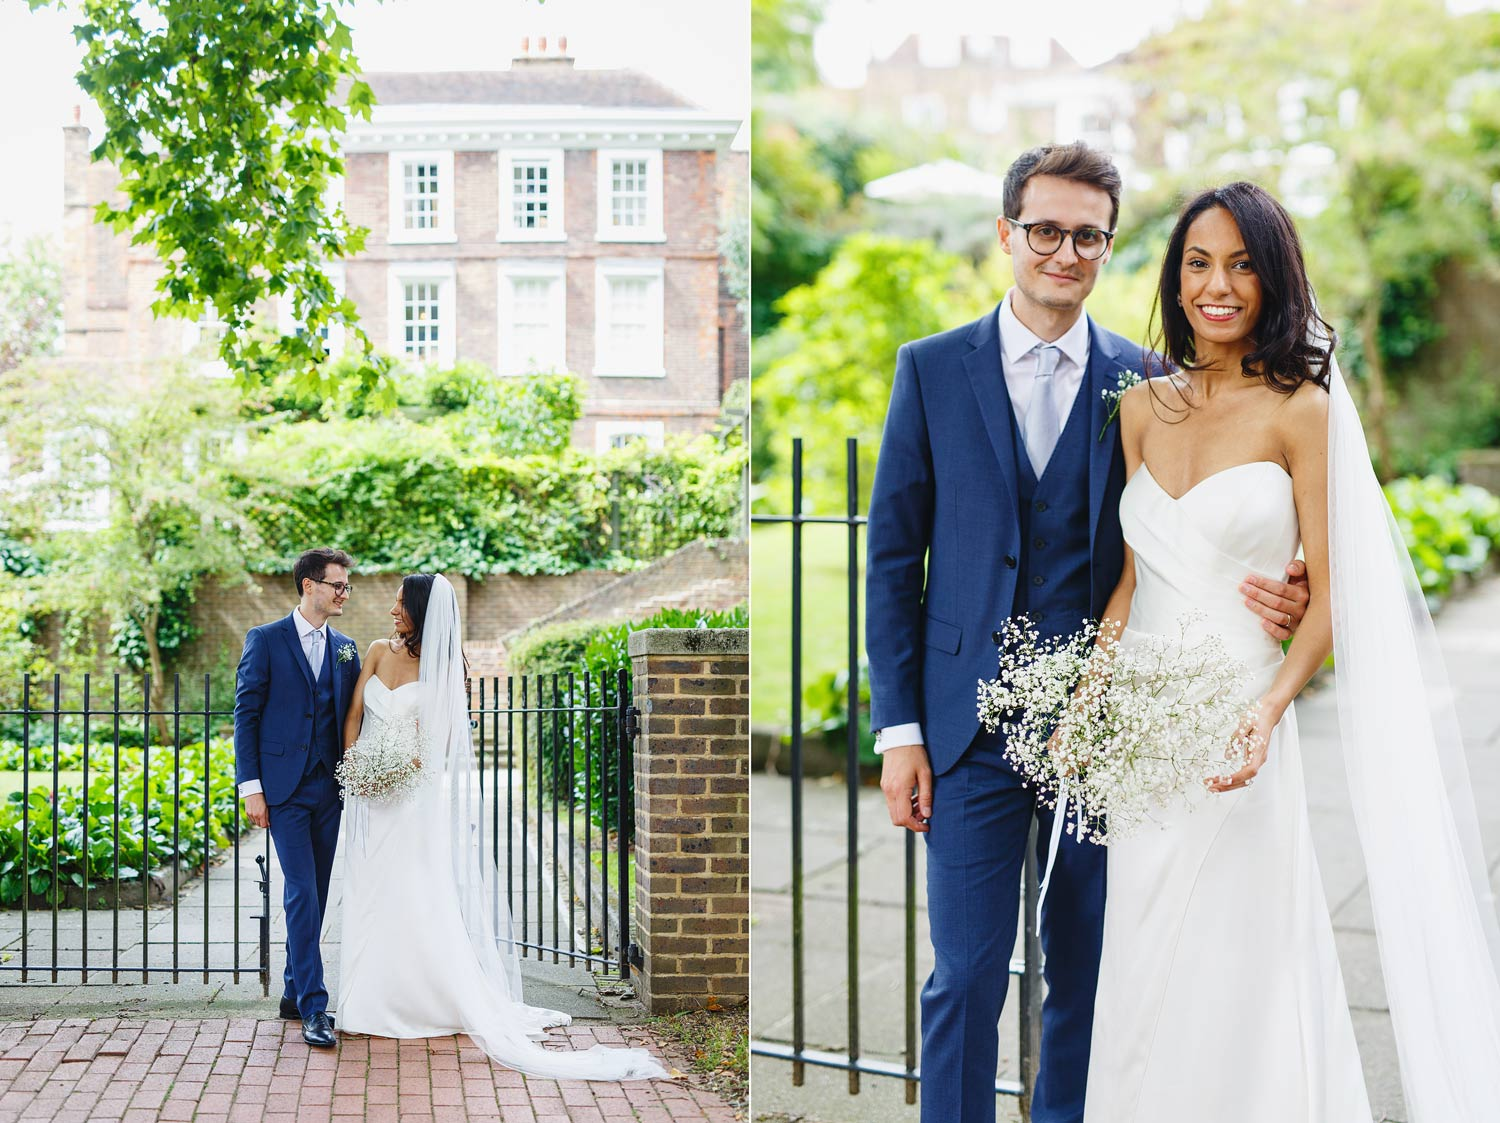 A newly married couple pose at Burgh House Museum in Hampstead, London - wedding photographer